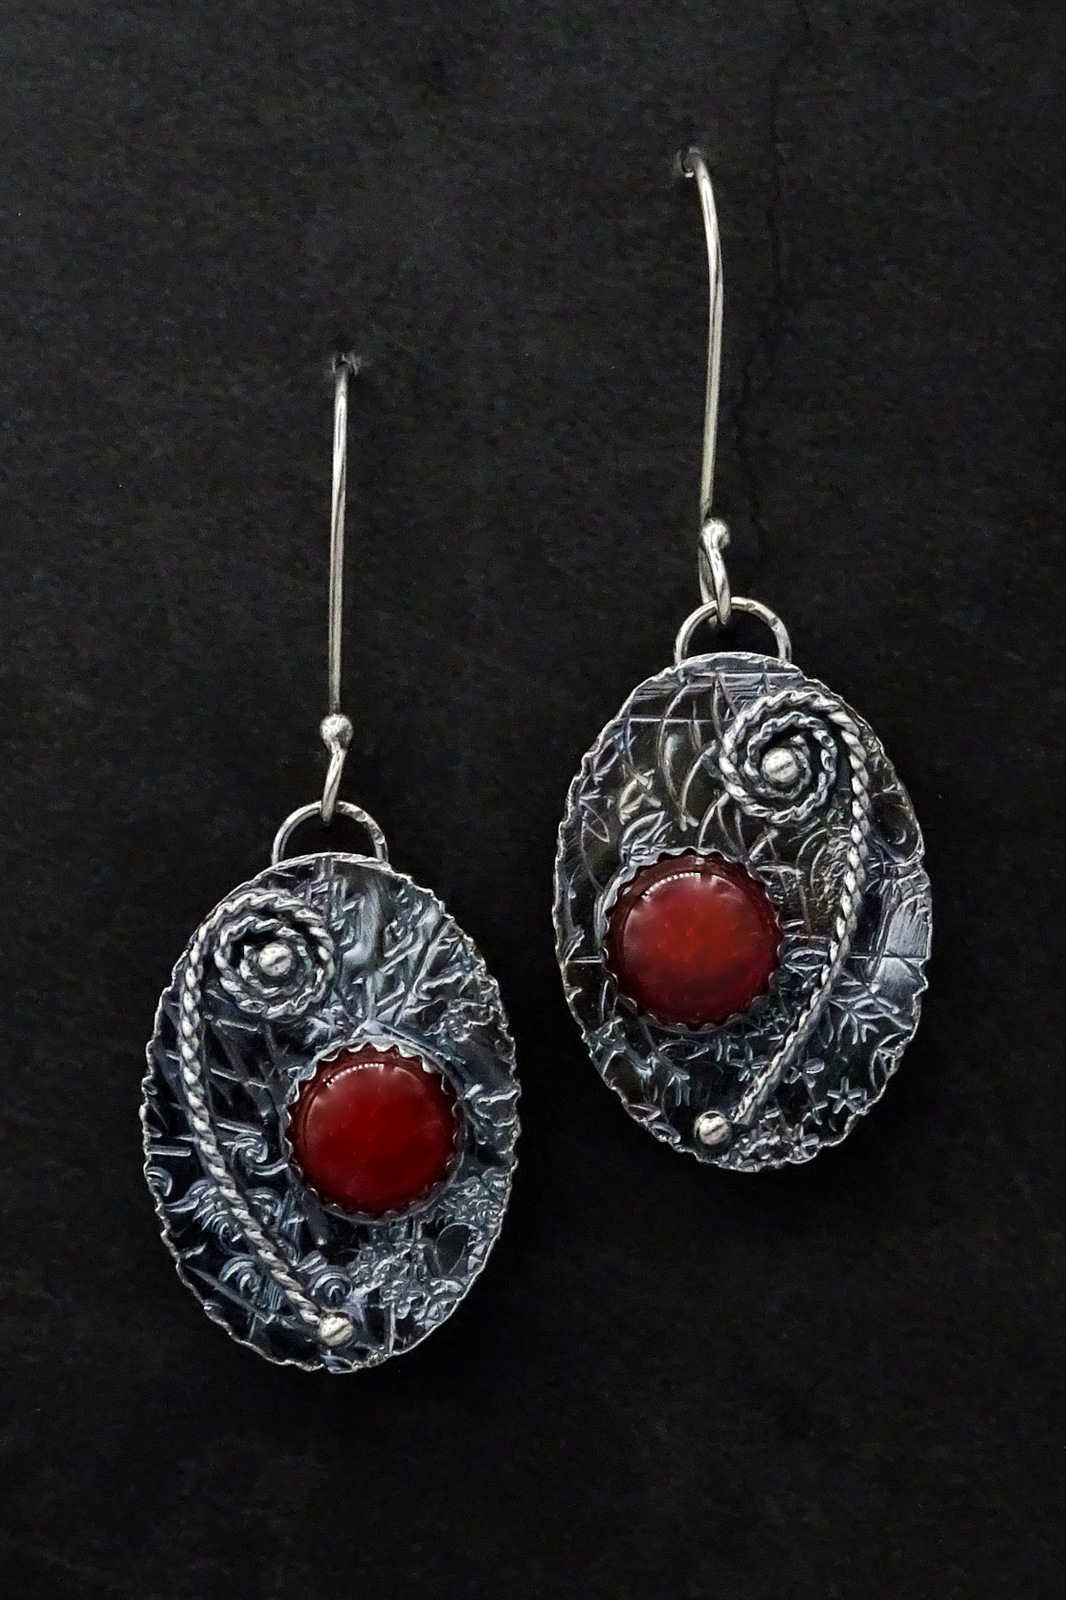 OVAL DISCS WITH RED STONE EARRINGS,  Silver Ear Wires,  1.25 x .75 inches - 2.25 inches drop length